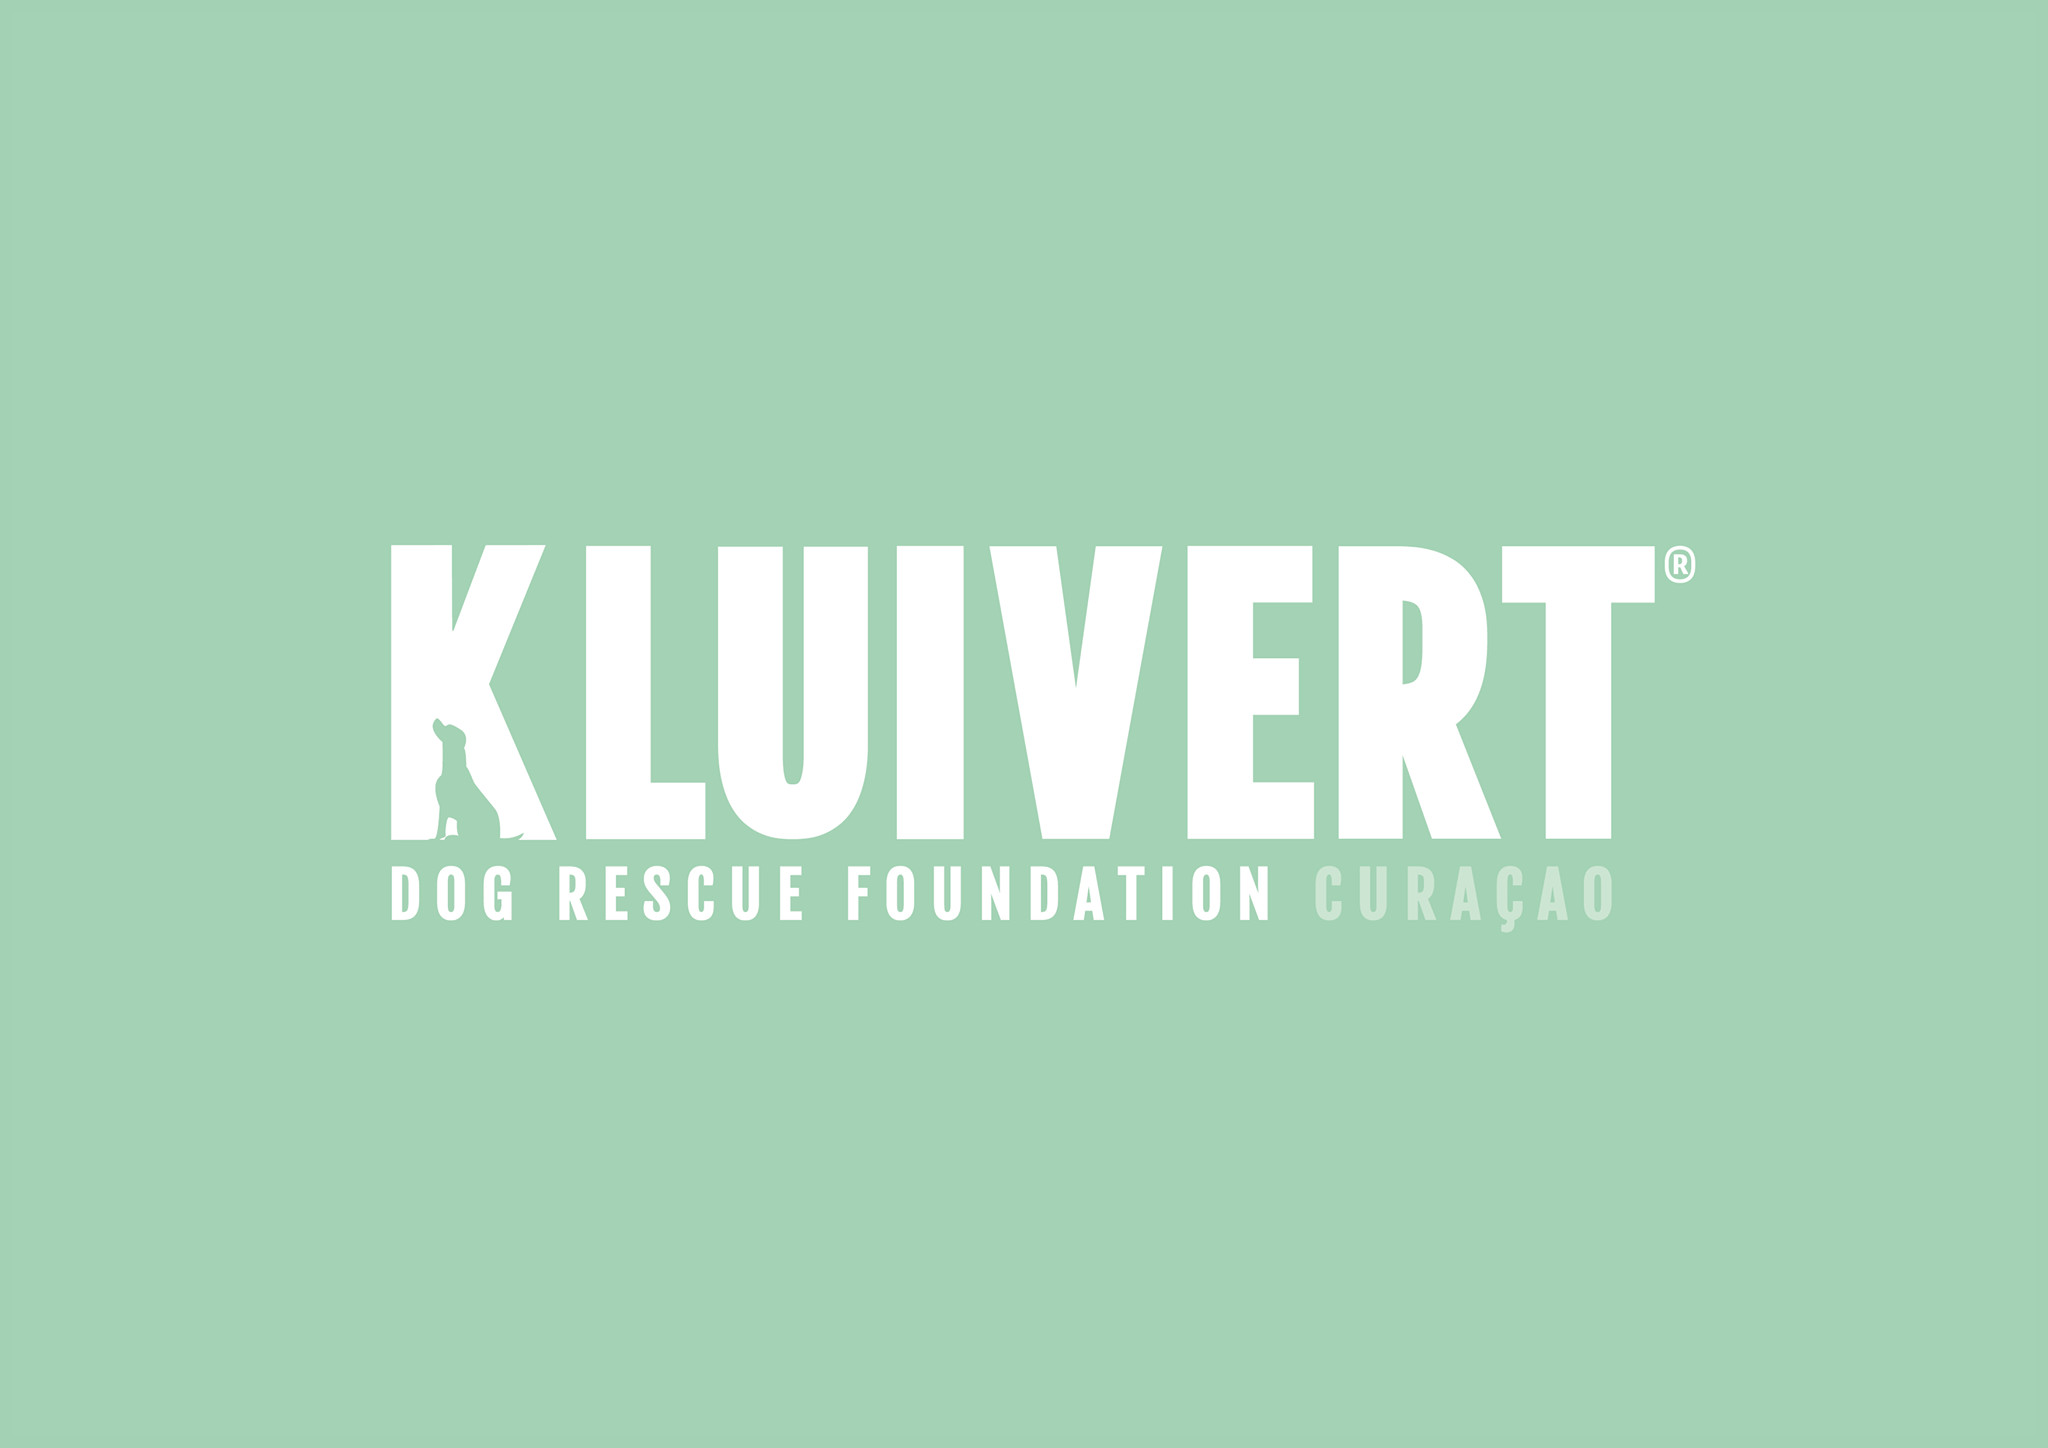 Kluivert Dog Rescue Foundation Curacao